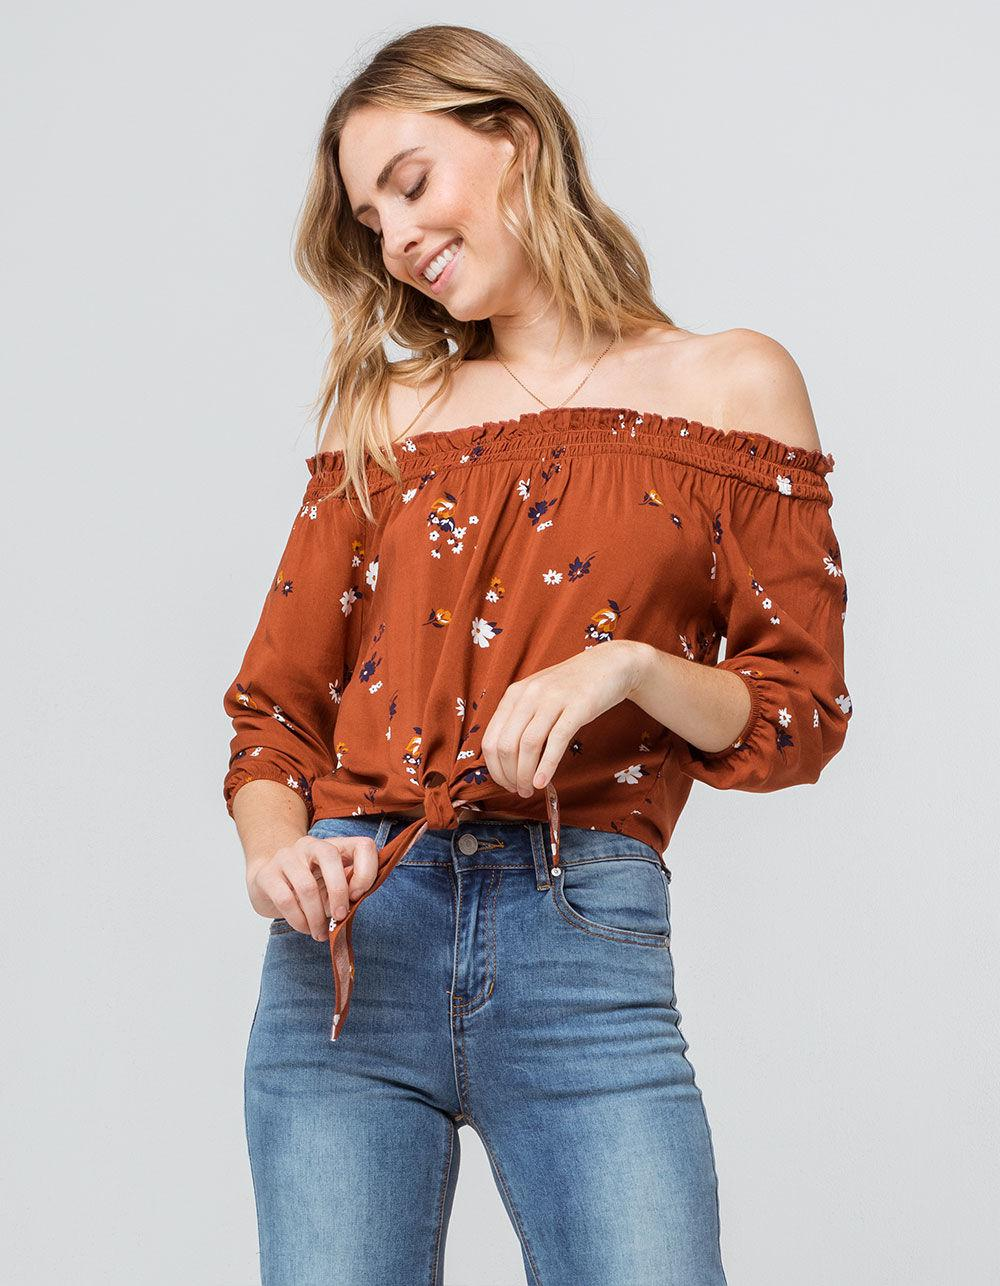 fe697177188d39 Lyst - Mimi Chica Floral Tie Front Rust Womens Off The Shoulder Top